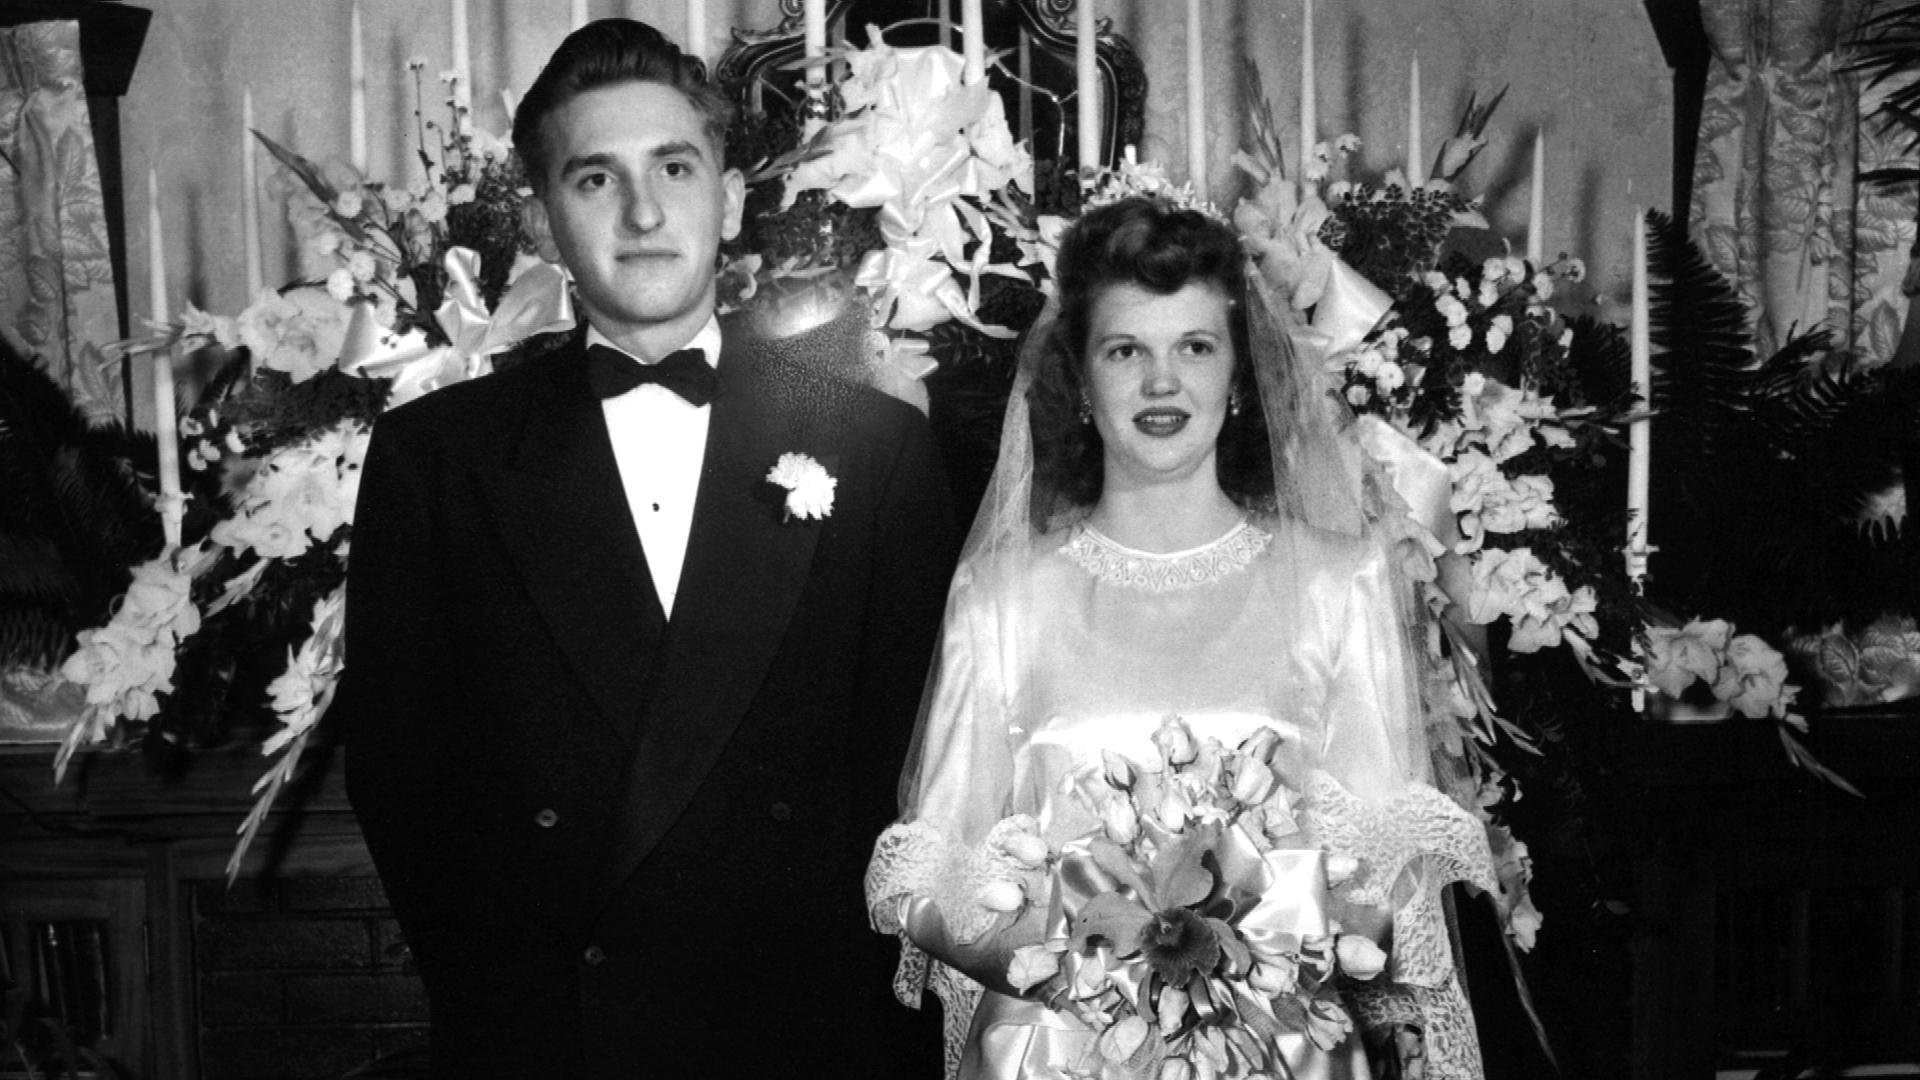 (photo courtesy LDS Church) Thomas S. Monson and his wife Frances on their wedding day on Oct. 7, 1948.